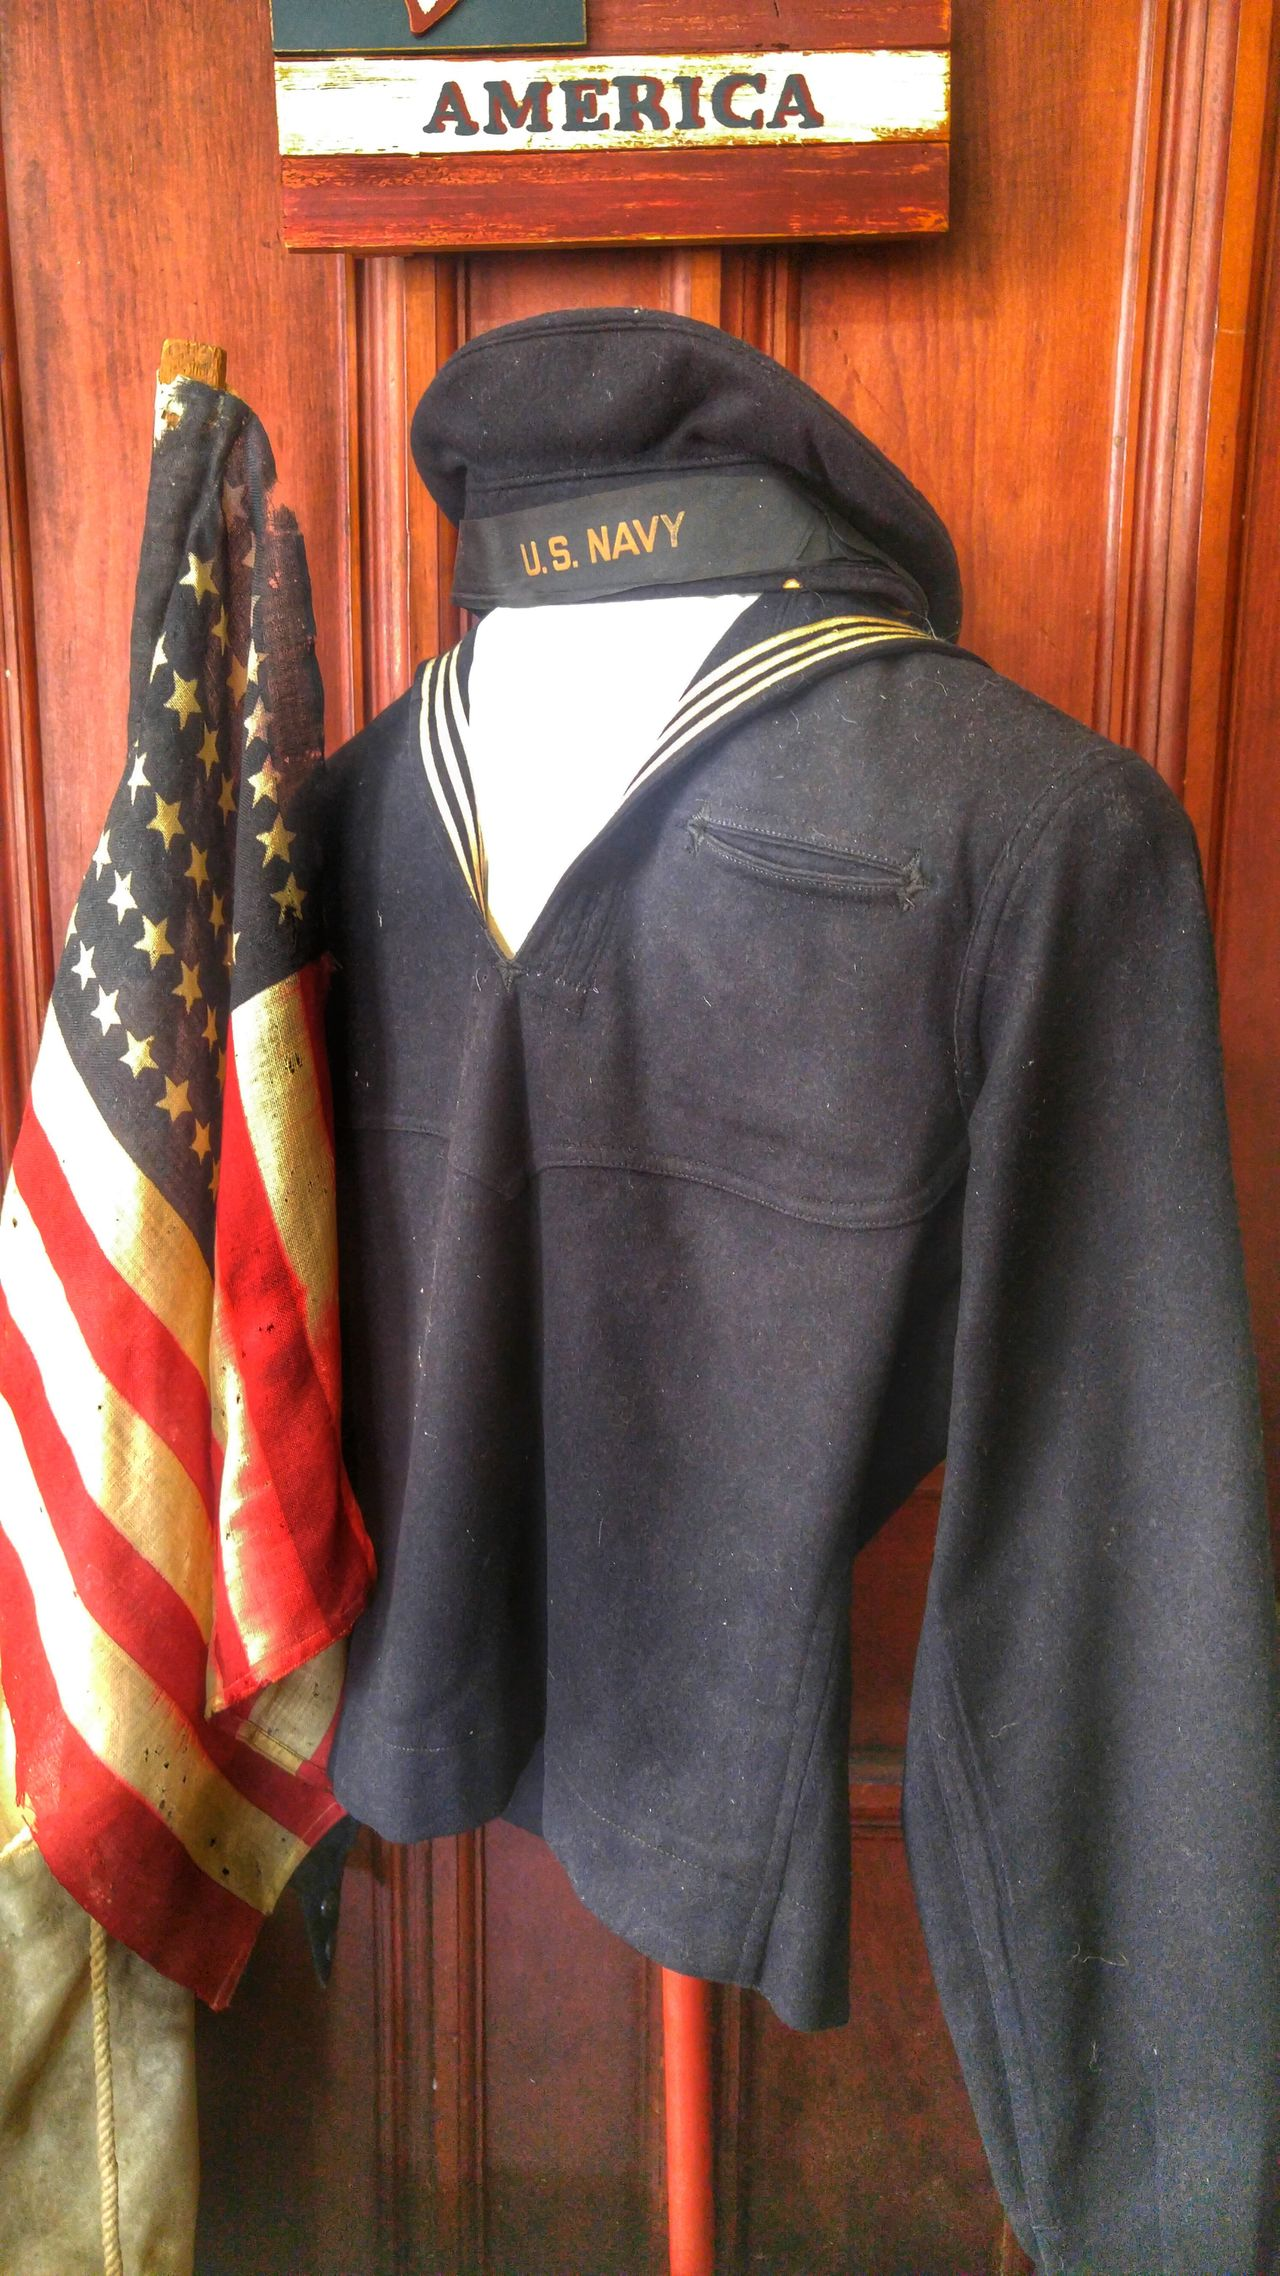 World war 1 Naval Uniform and US flag with on 48 stars Men Uniform Naval Uniform American Flag 48 Stars Historical Florida Baker House Armed Forces Pride Service History US Navy Ww1 Worldwar1